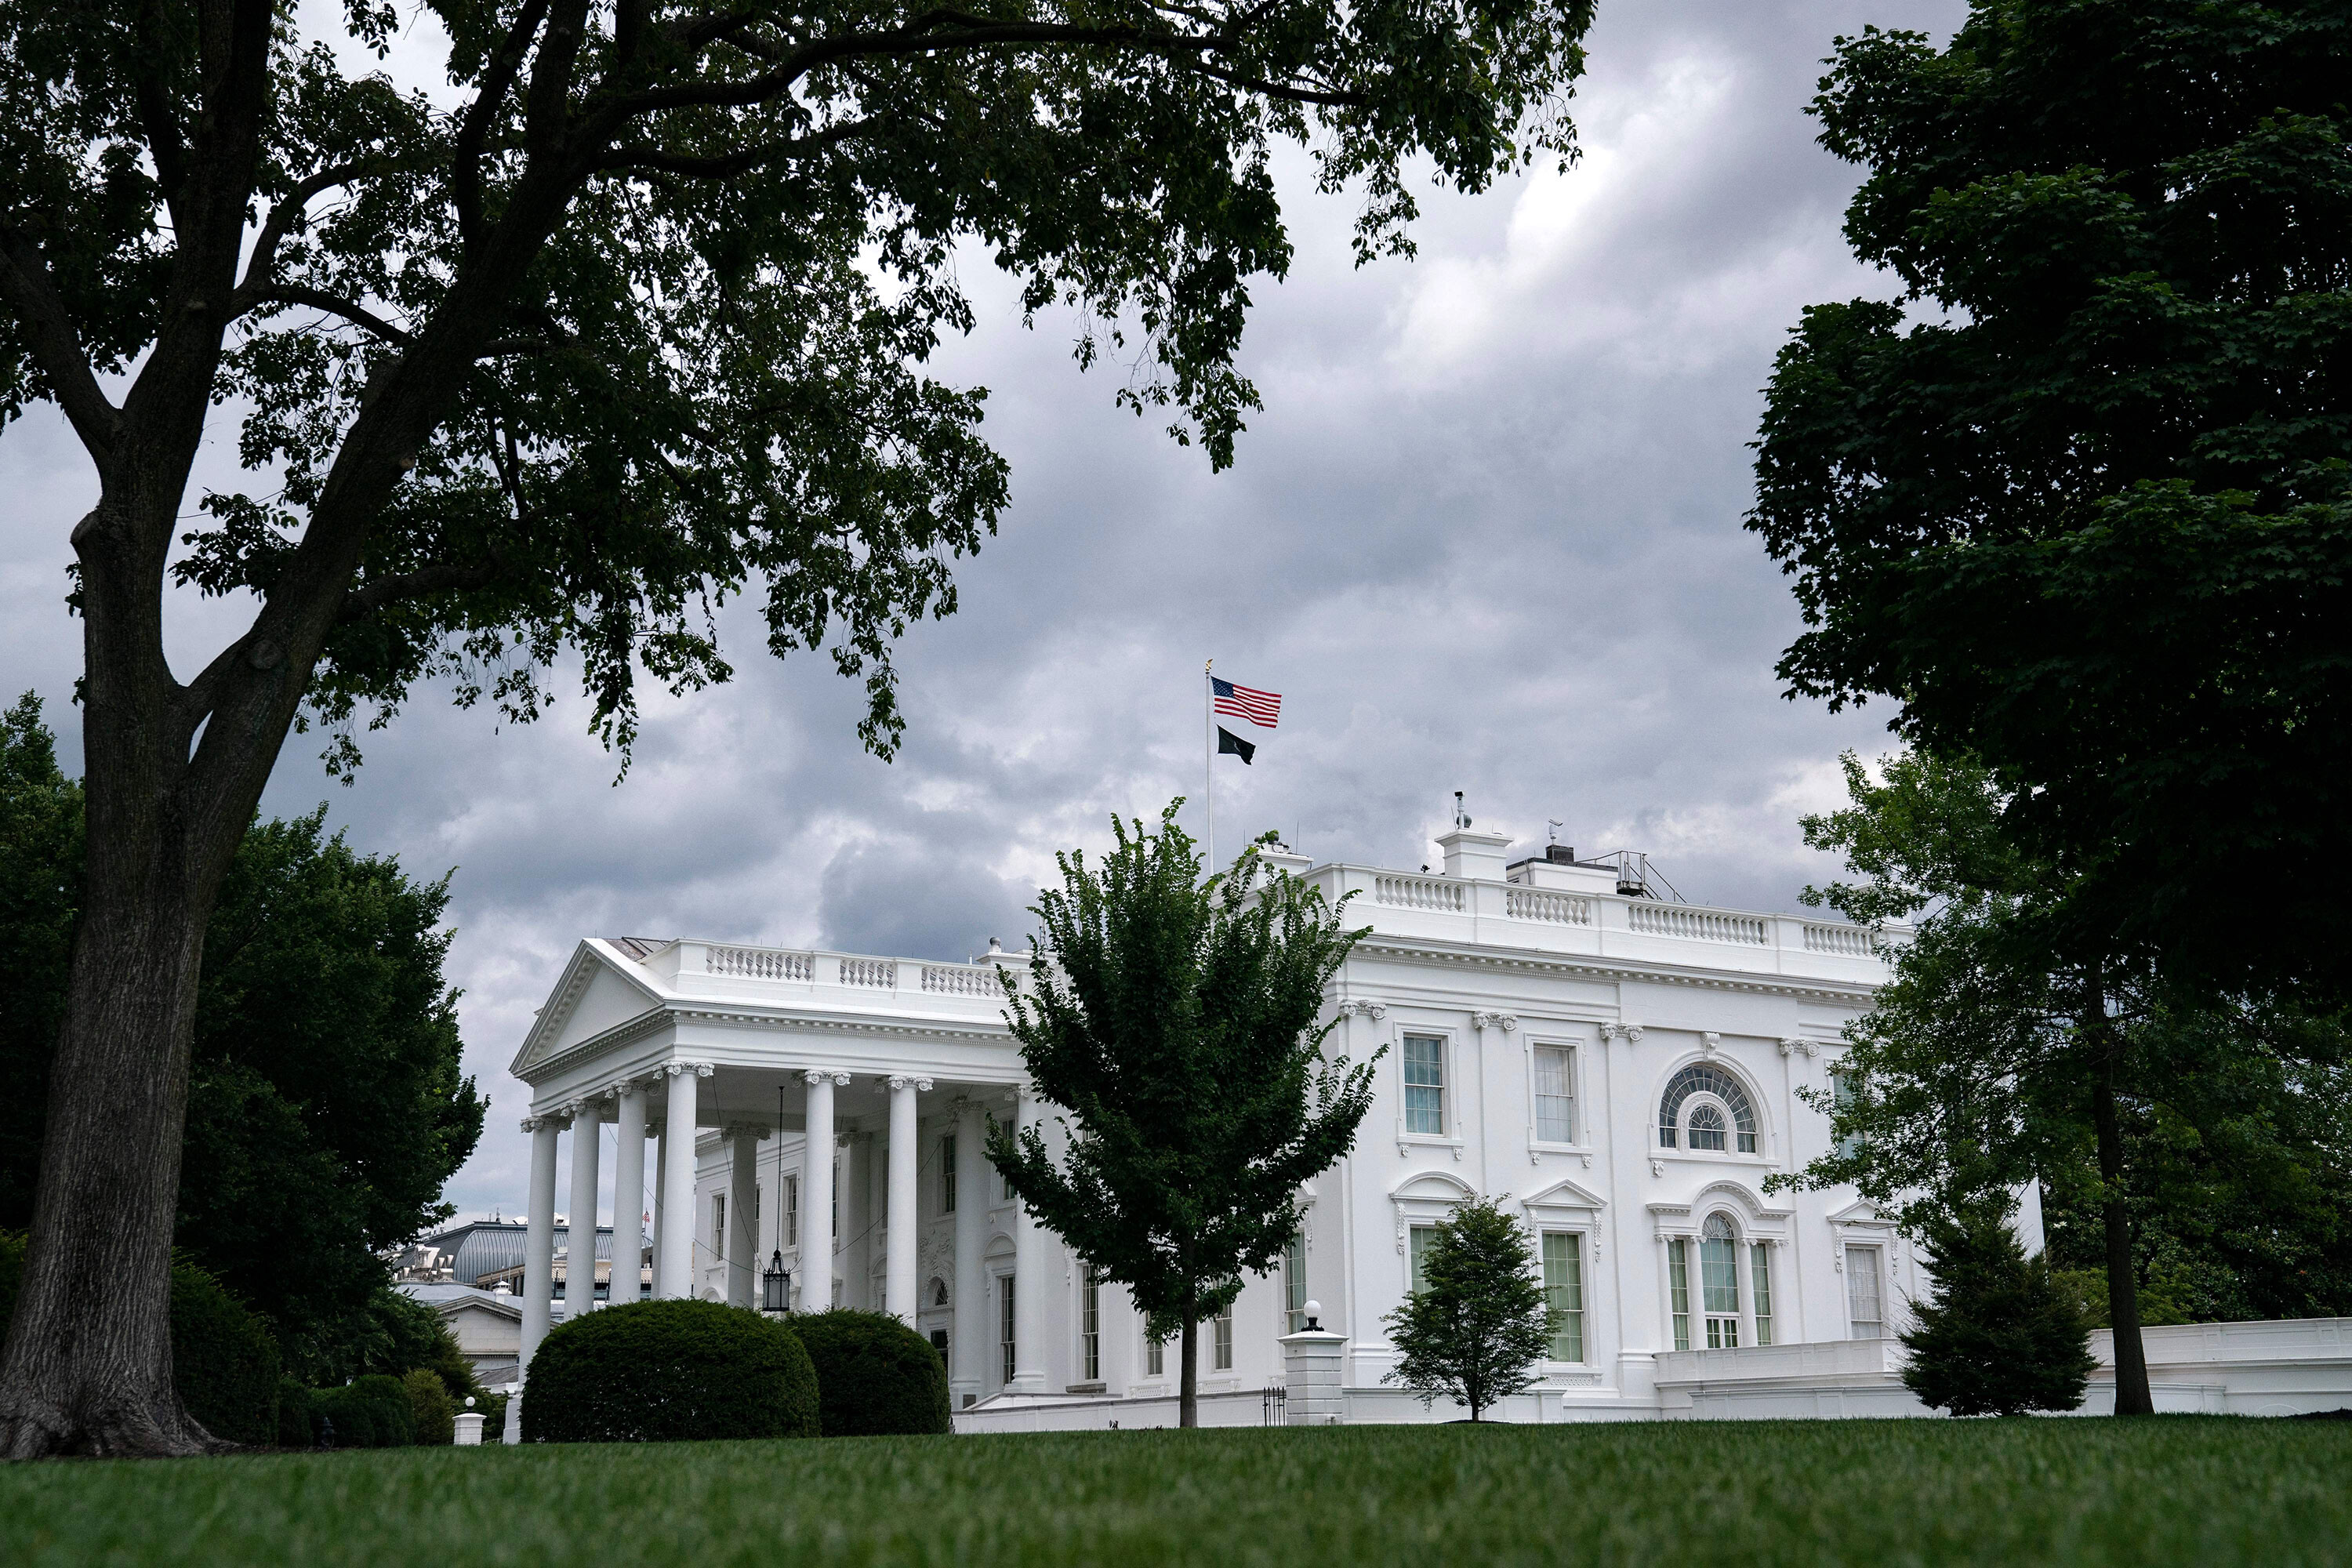 White House explored whether administration could make payments after debt ceiling breached